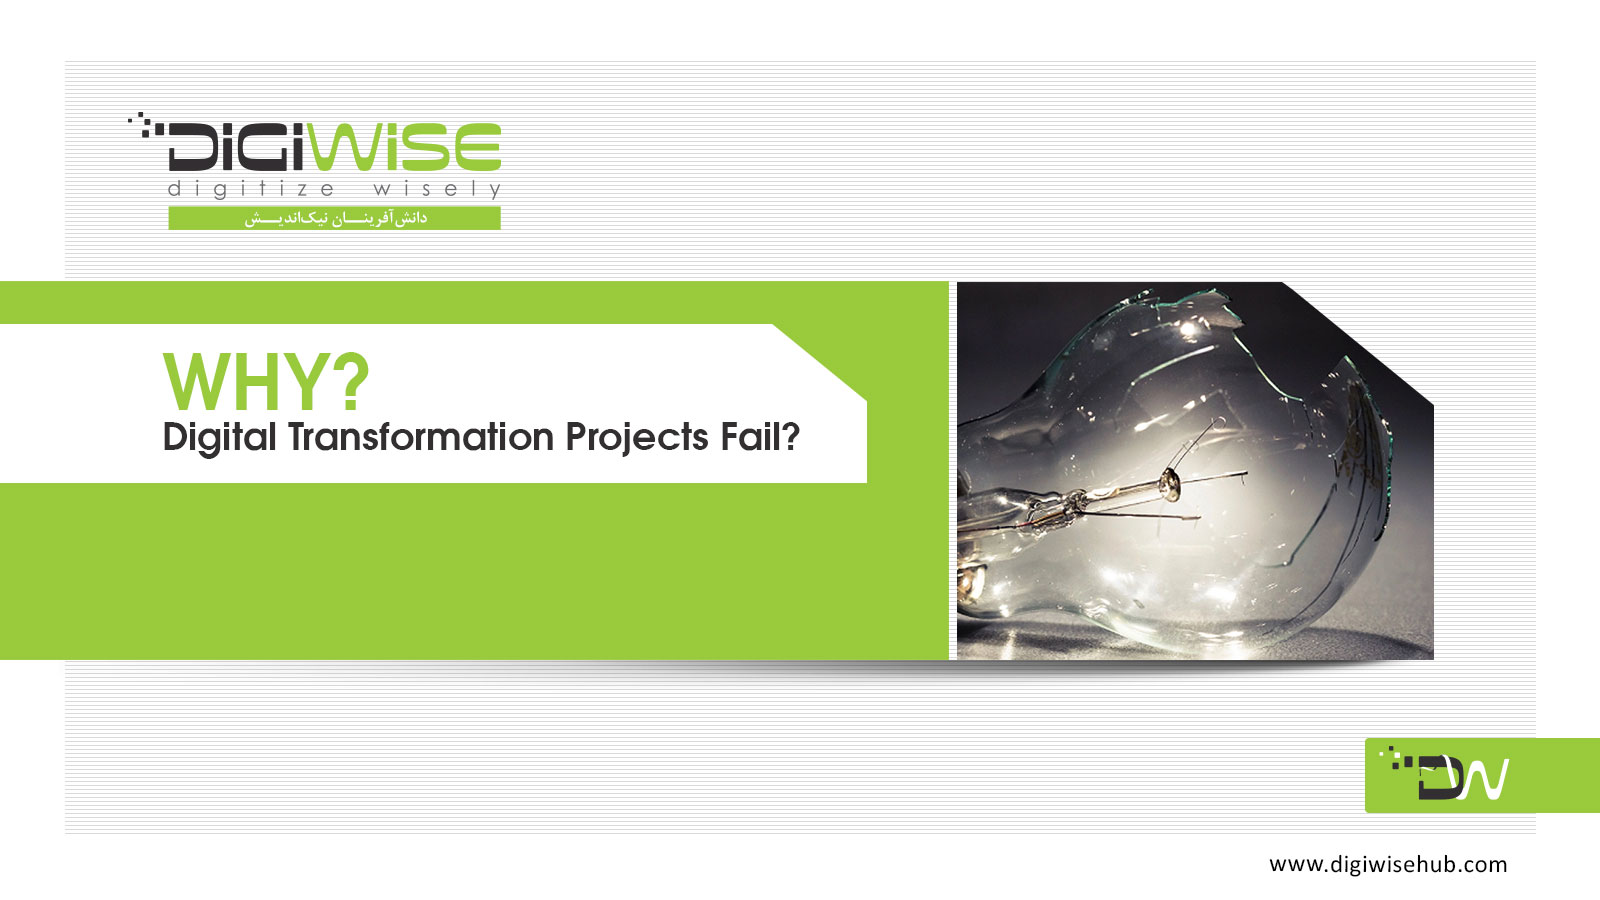 Why Digital Transformation Projects Fail?